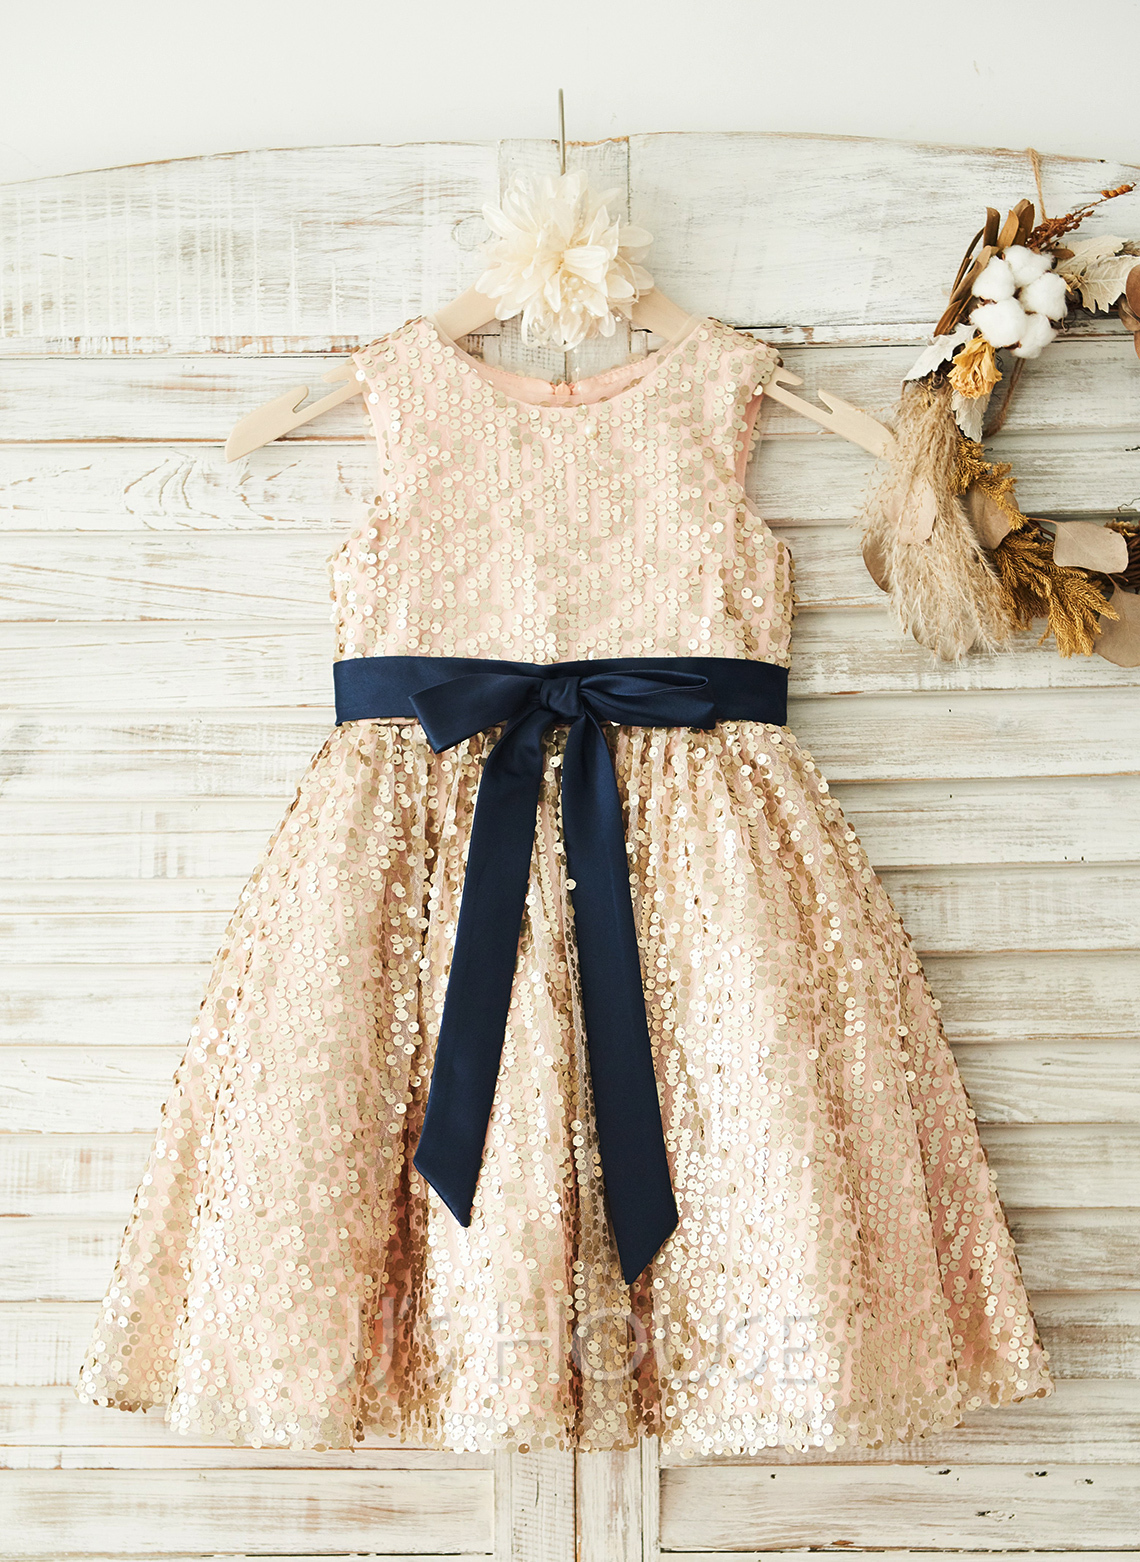 A-Line/Princess Knee-length Flower Girl Dress - Sequined Sleeveless Scoop Neck With Sash/Sequins/Bow(s)